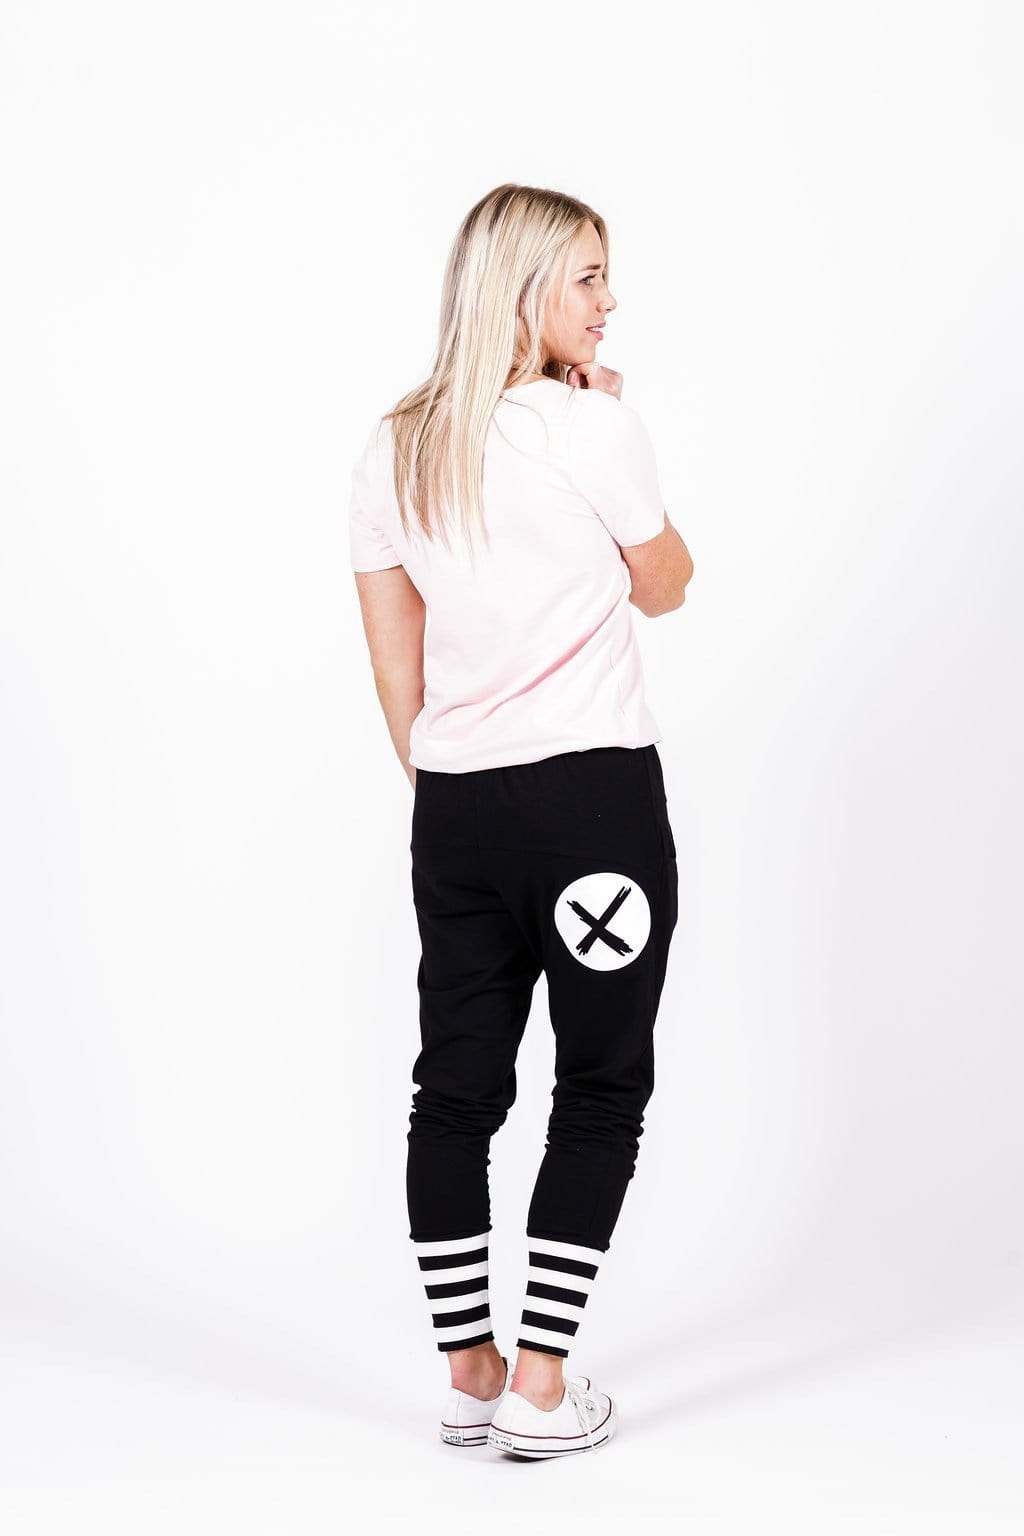 Home-Lee Apartment Pants - Black with Stripe Cuffs